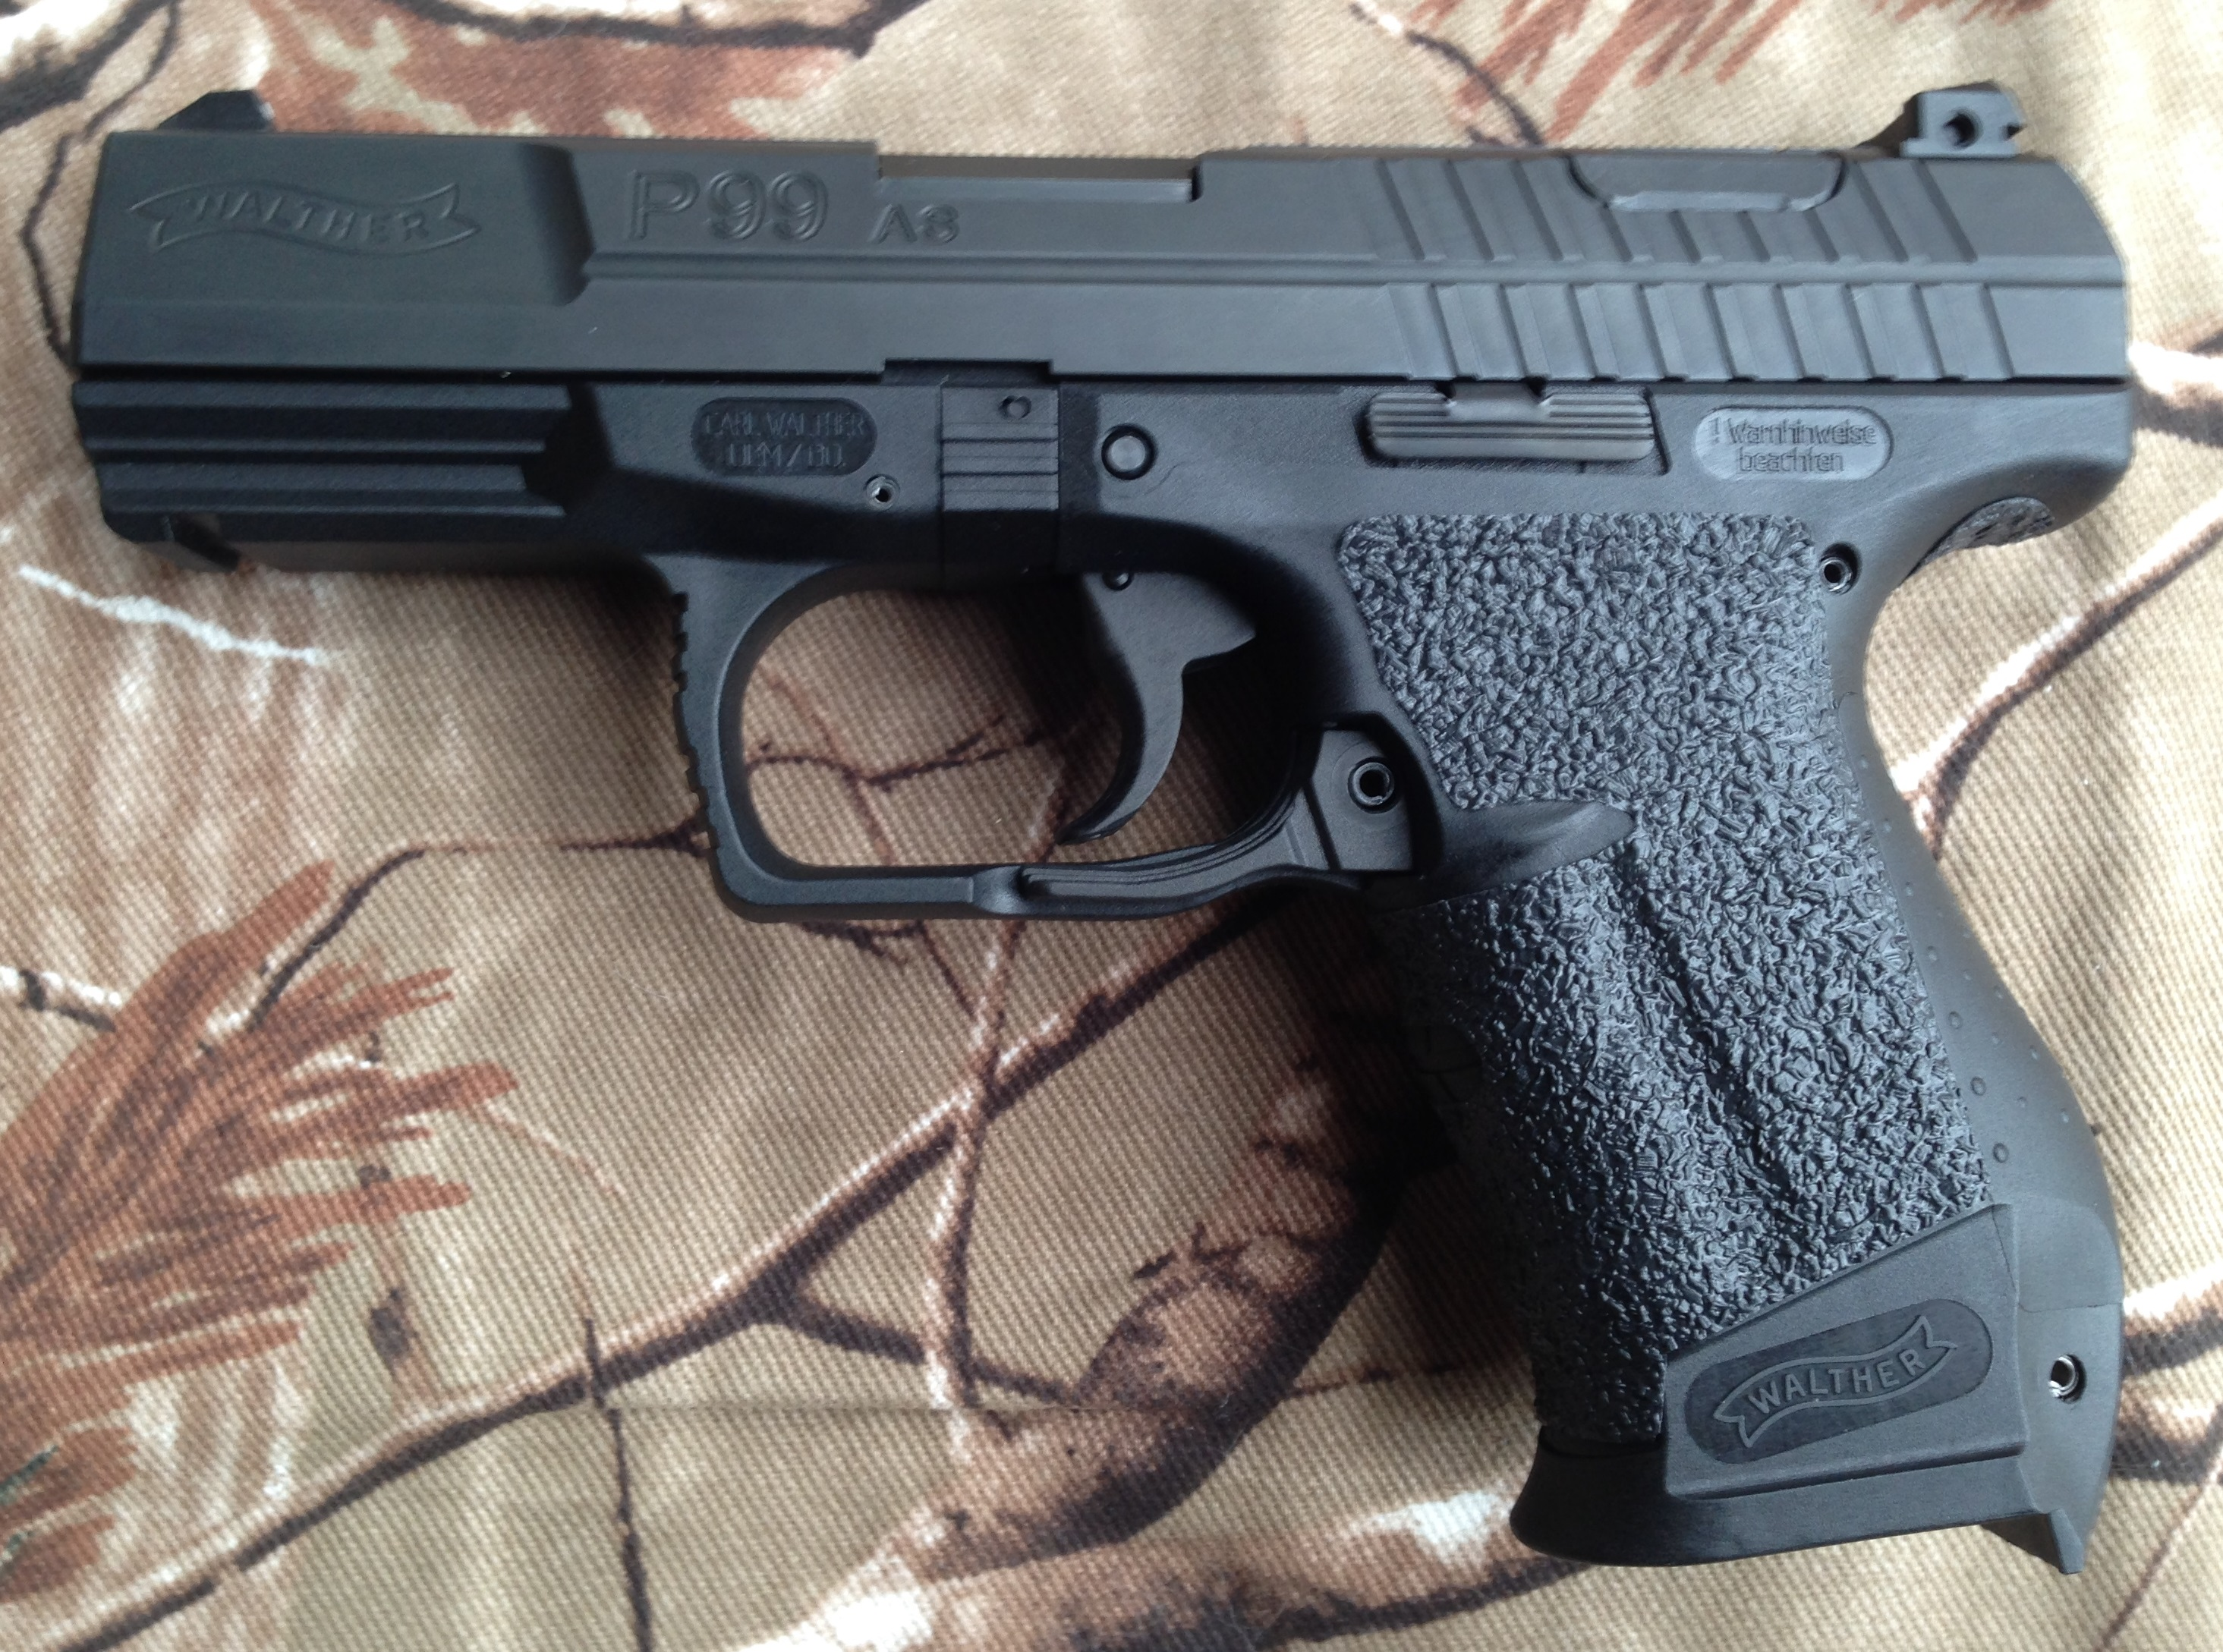 tractiongrips fit walther p99